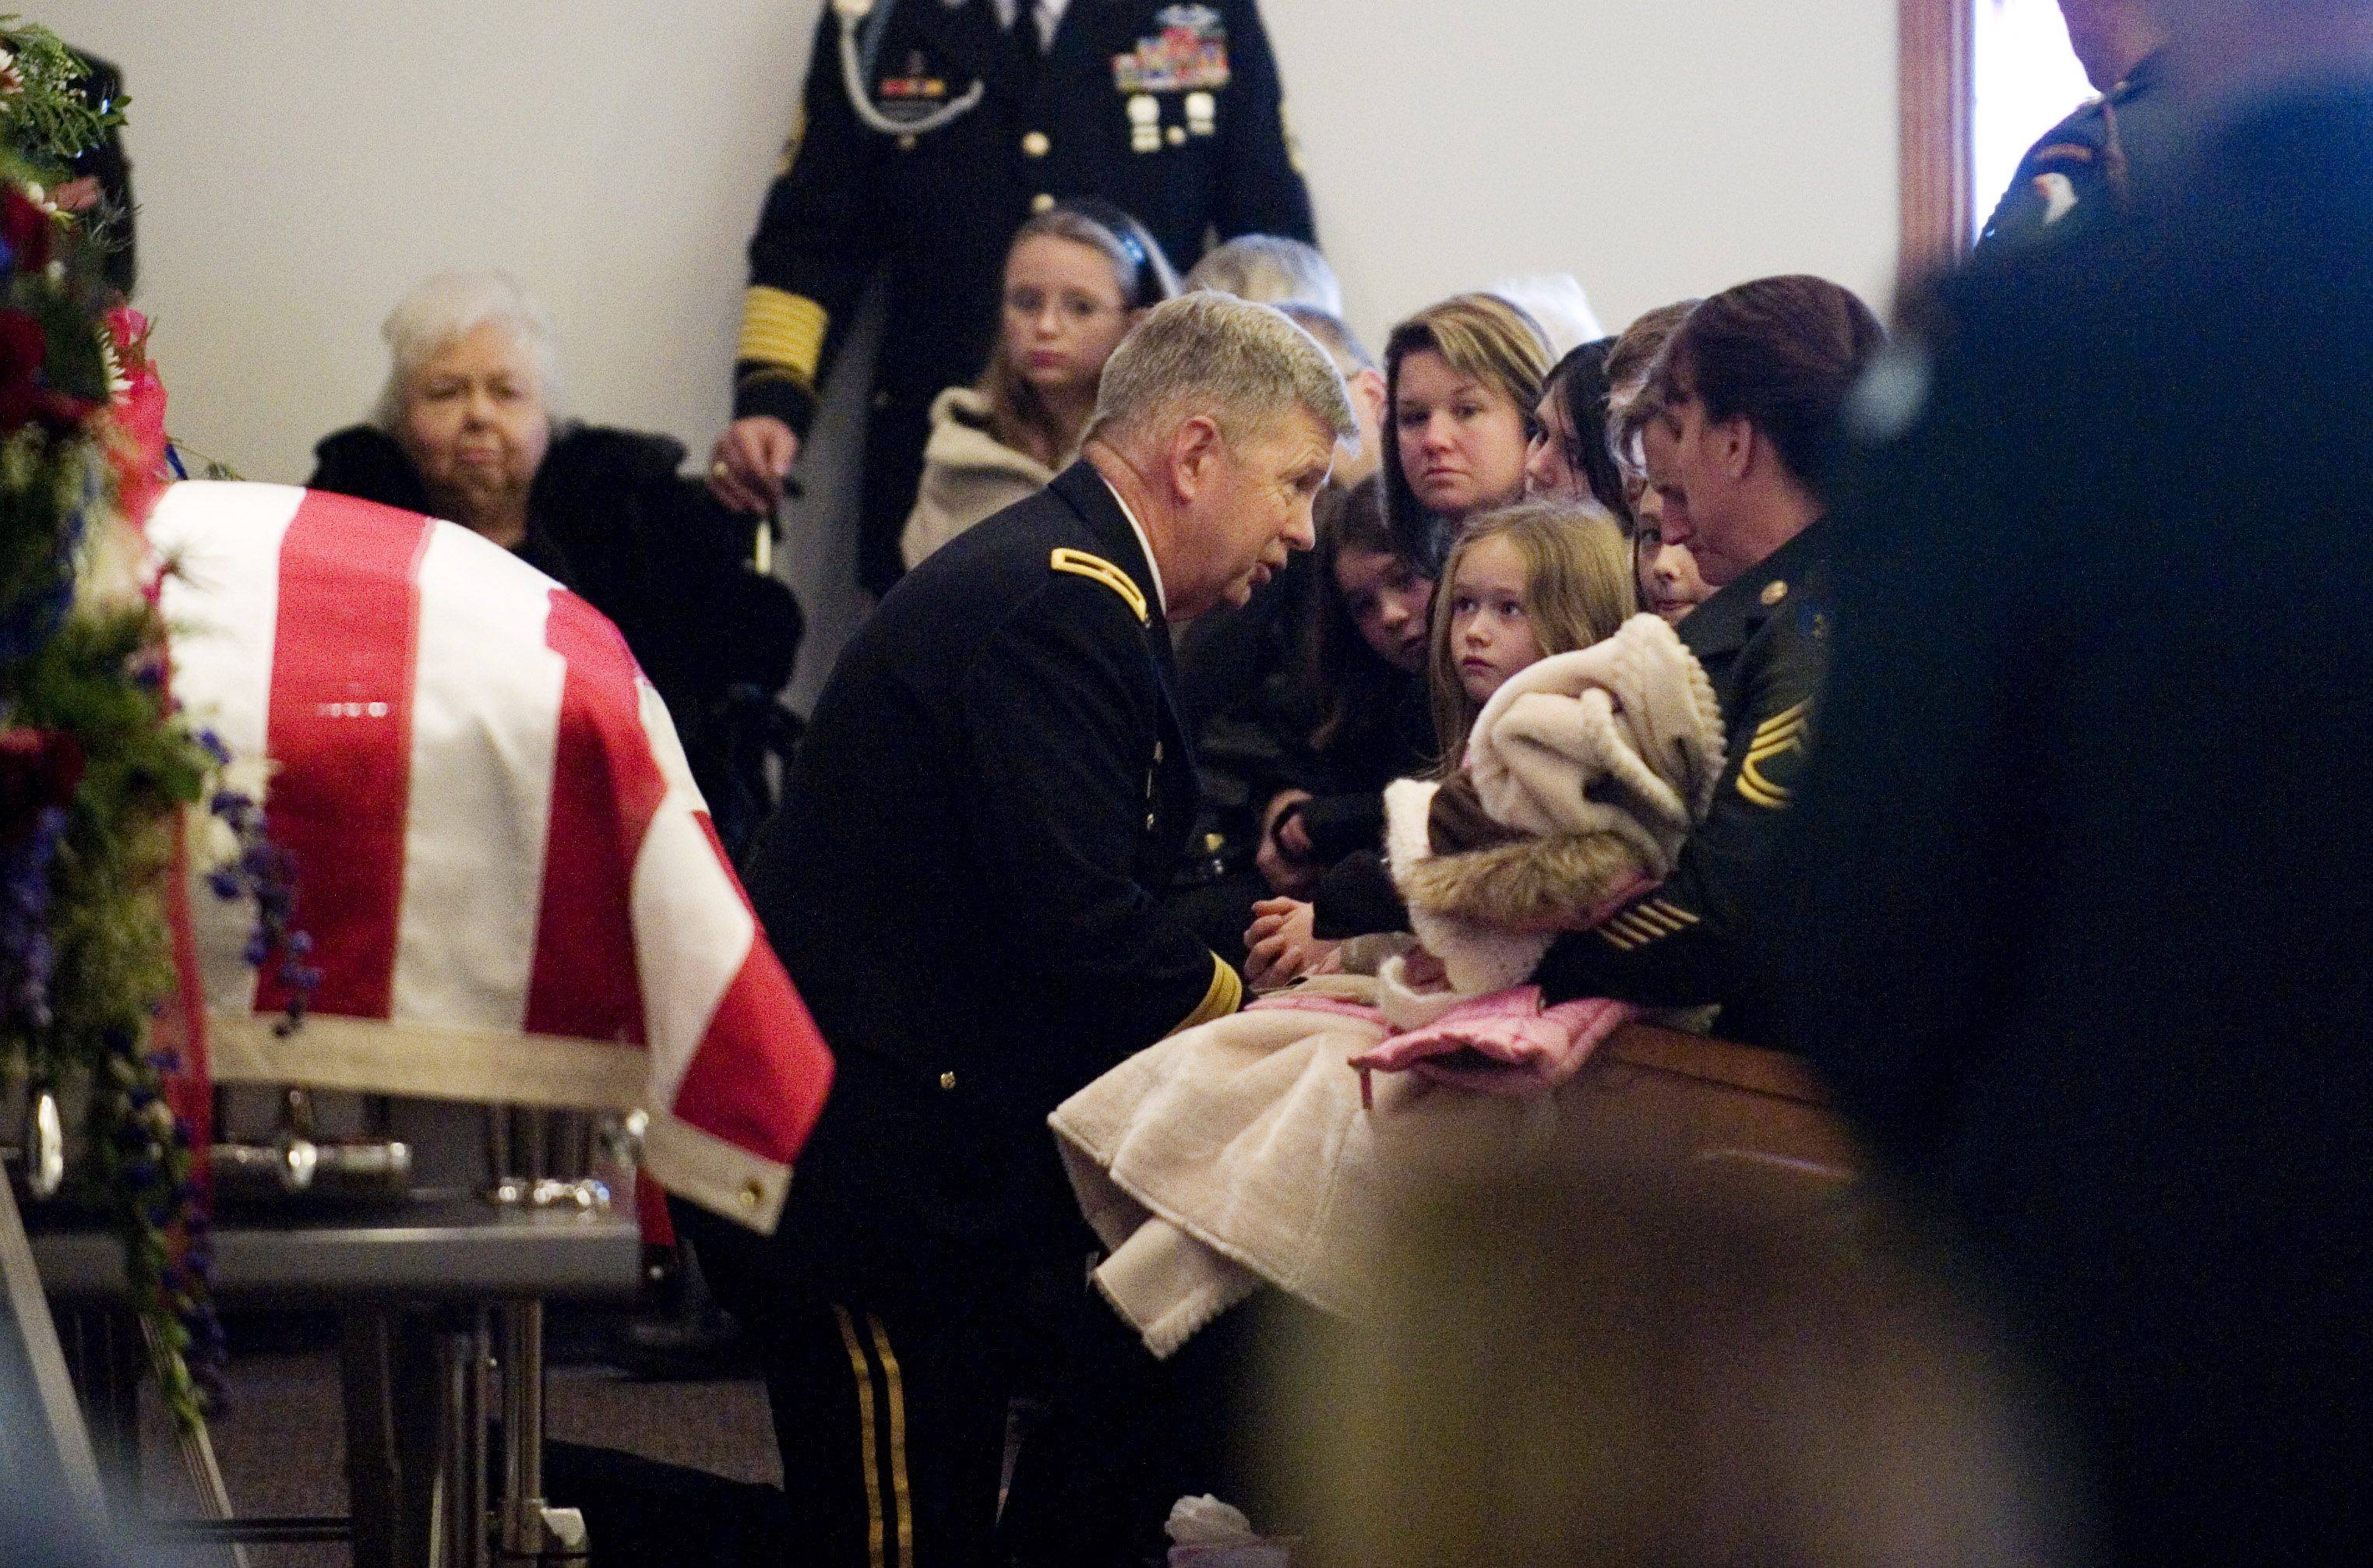 "On Dec. 9, Brig. Gen. William ""Tim"" Crosby presented the purple heart, bronze star and the meritorious service medal to the family of Army Sgt. Barry Jarvis, 36, at Deer Creek Baptist Church in Tell City, Ind. Jarvis, a member of the 101st Airborne Division in Ft. Campbell, Ky., was one of six soldiers killed Nov. 29 in Afghanistan when a rogue Afghan border policeman turned his gun on his American trainers as the group headed to shooting practice."